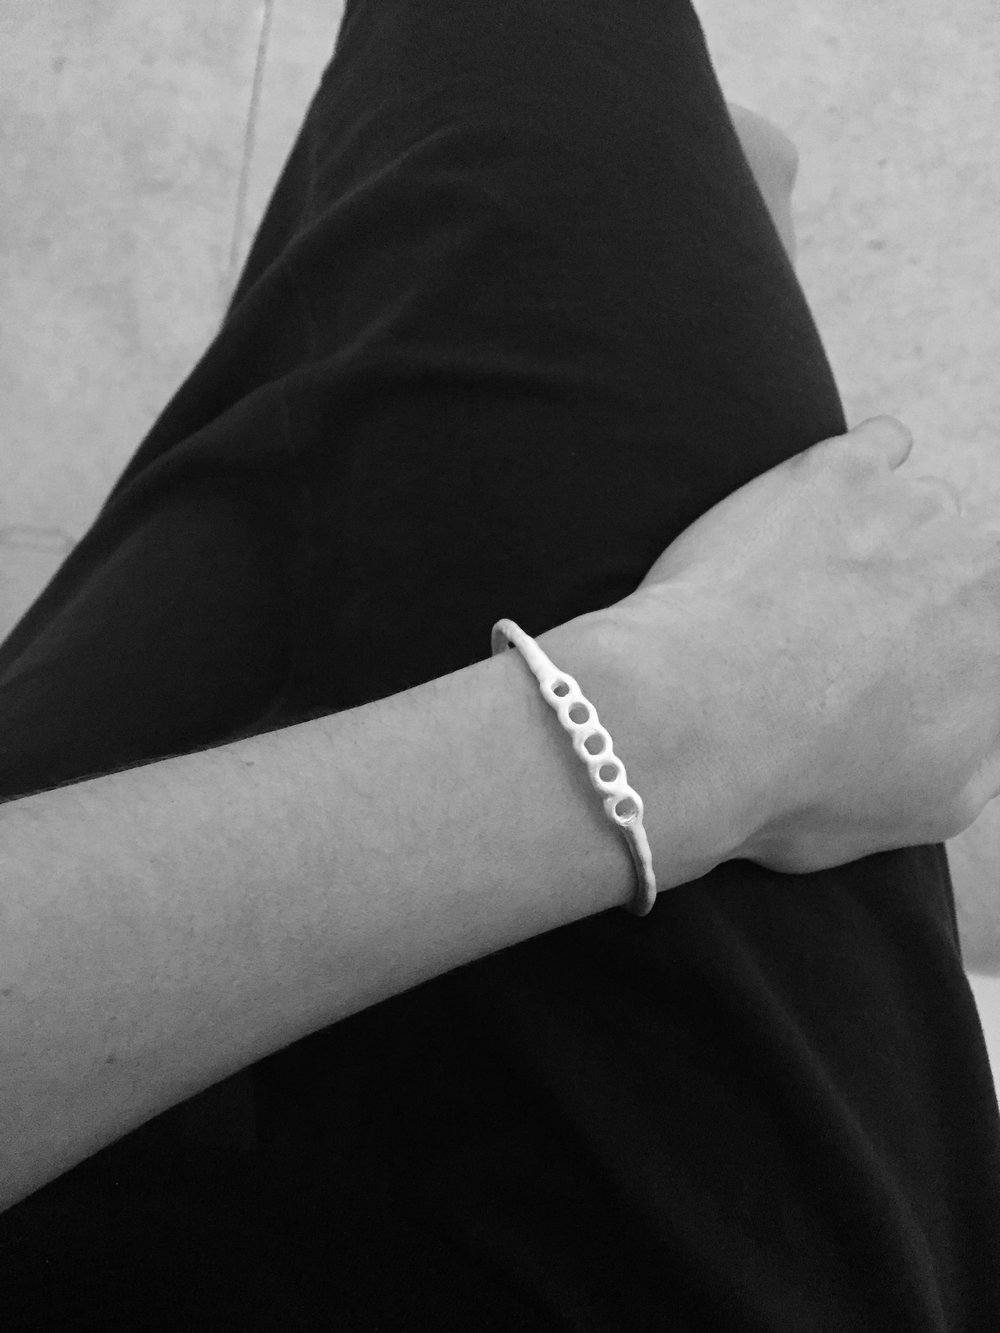 5 YEARS ANNIVERSARY BRACELET - STERLING SILVER